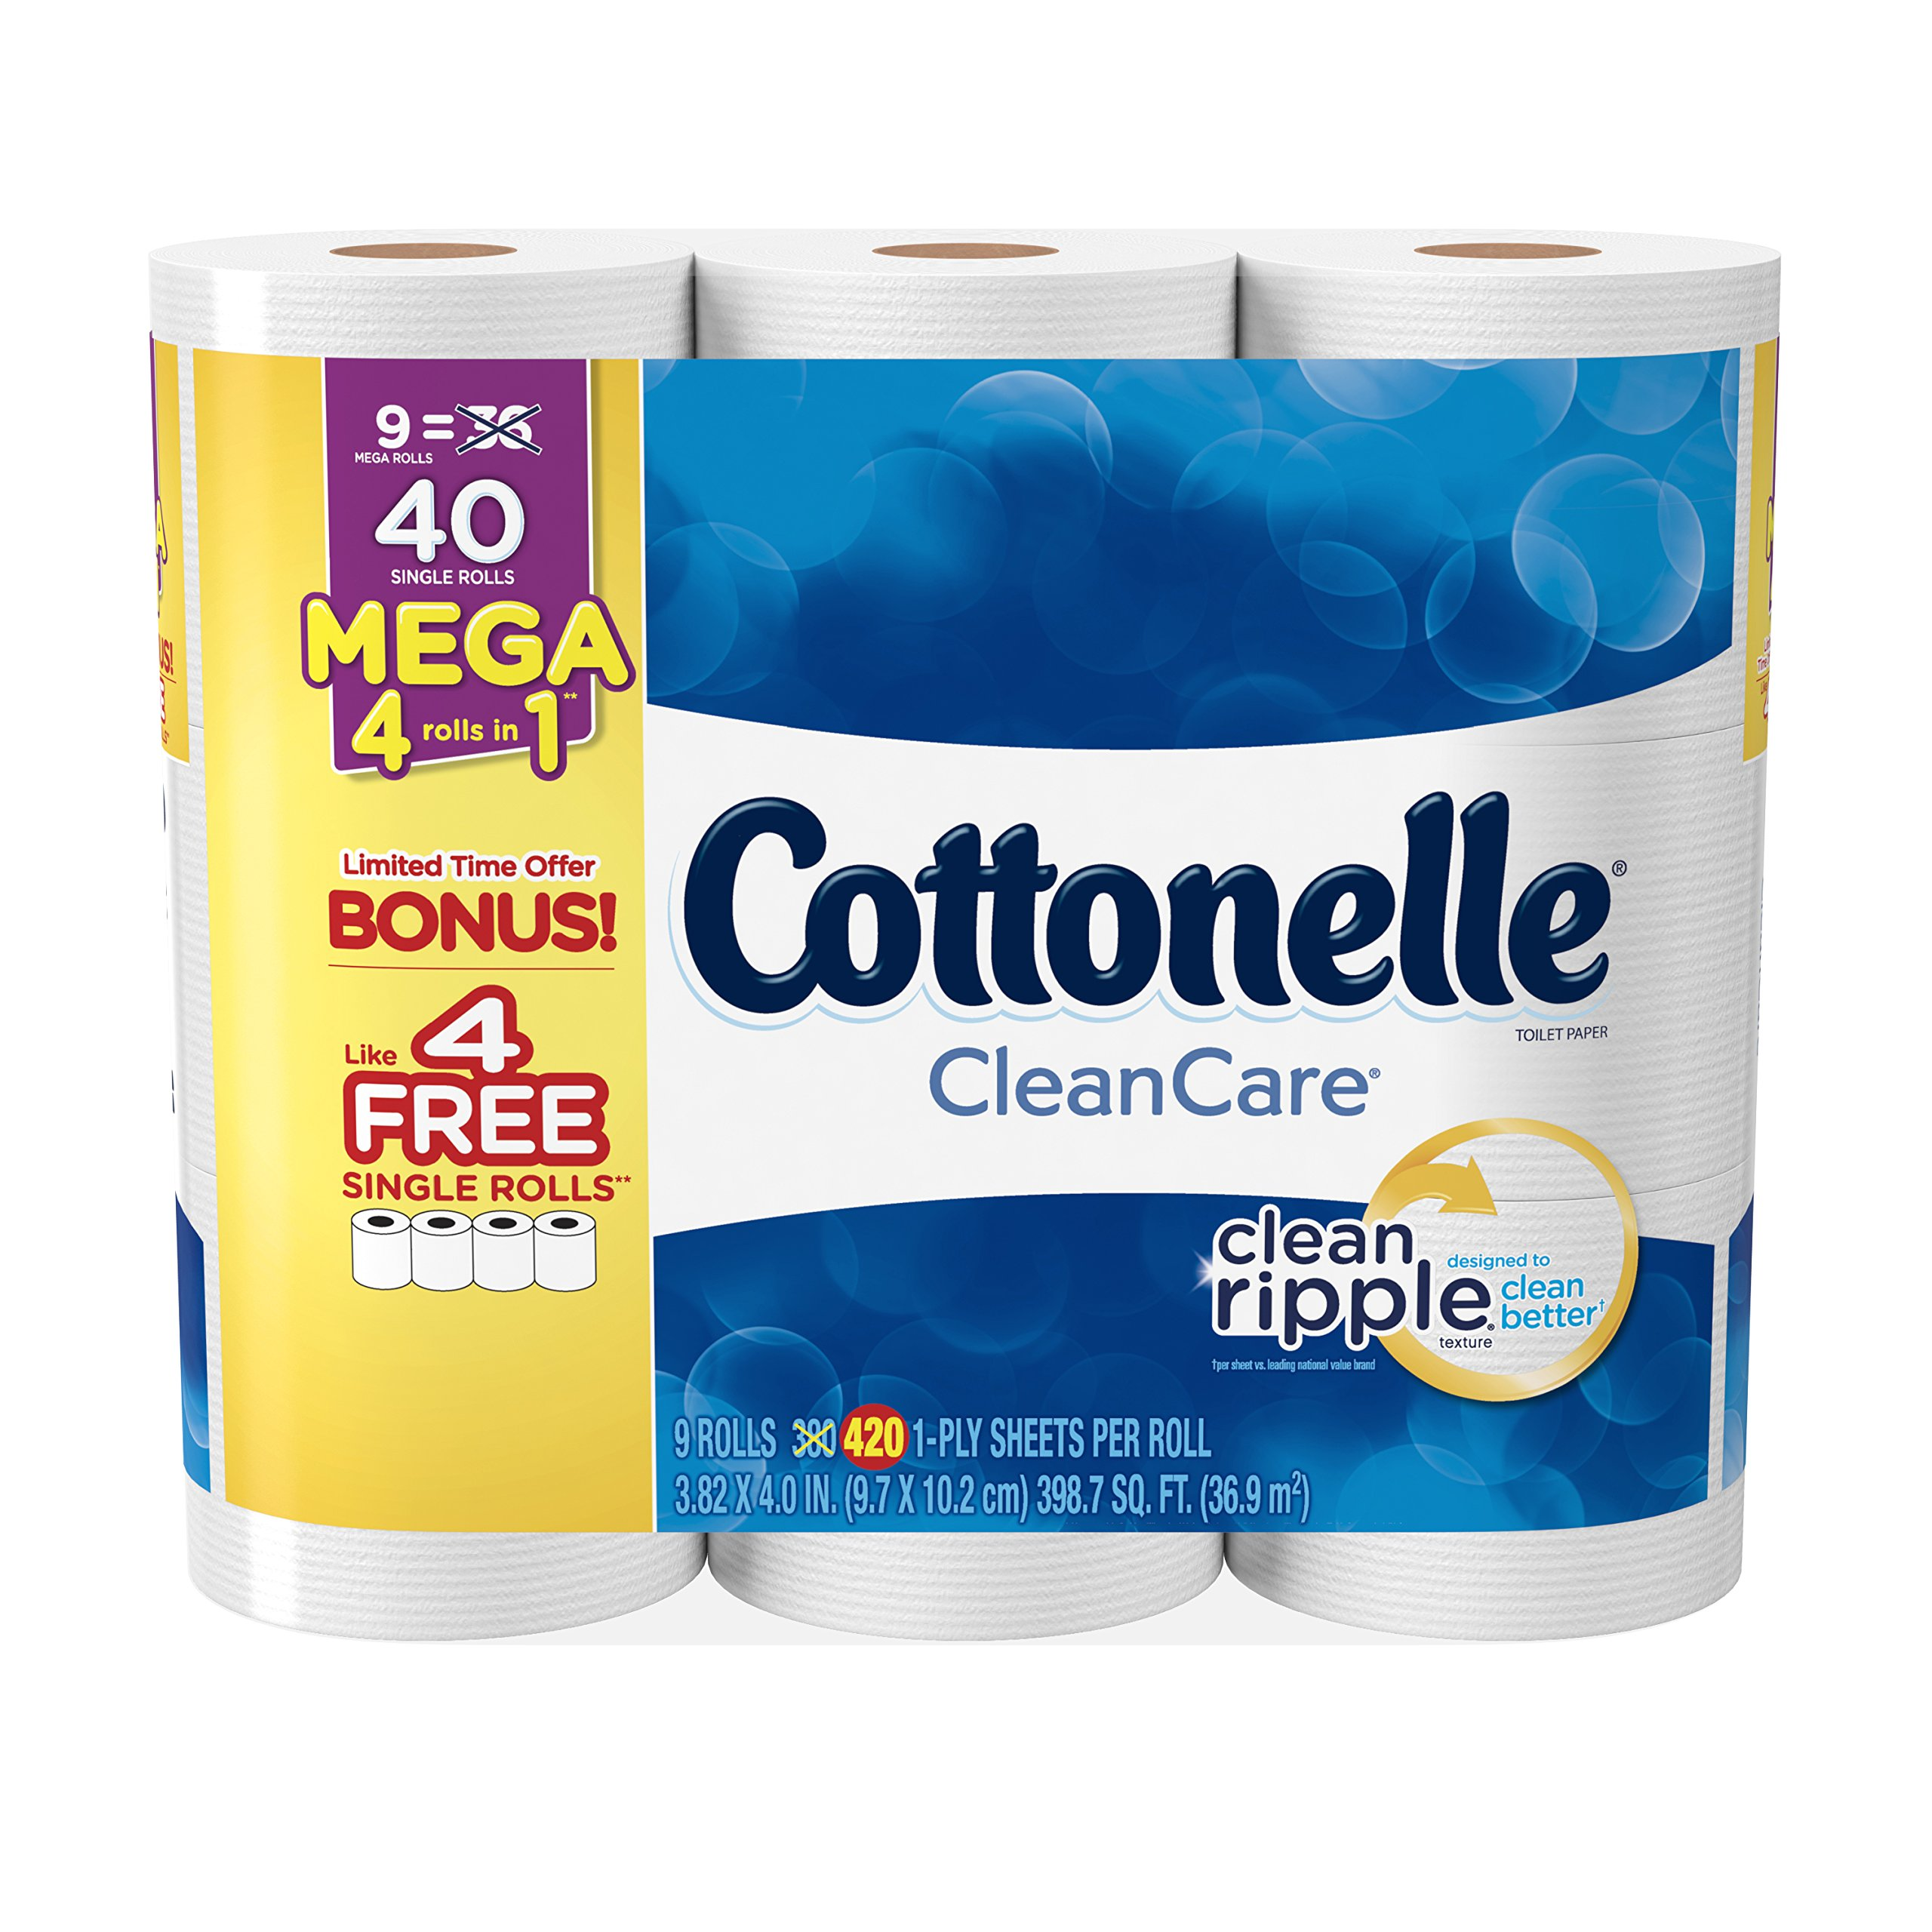 Cottonelle Ultra Cleancare Toilet Paper by Cottonelle